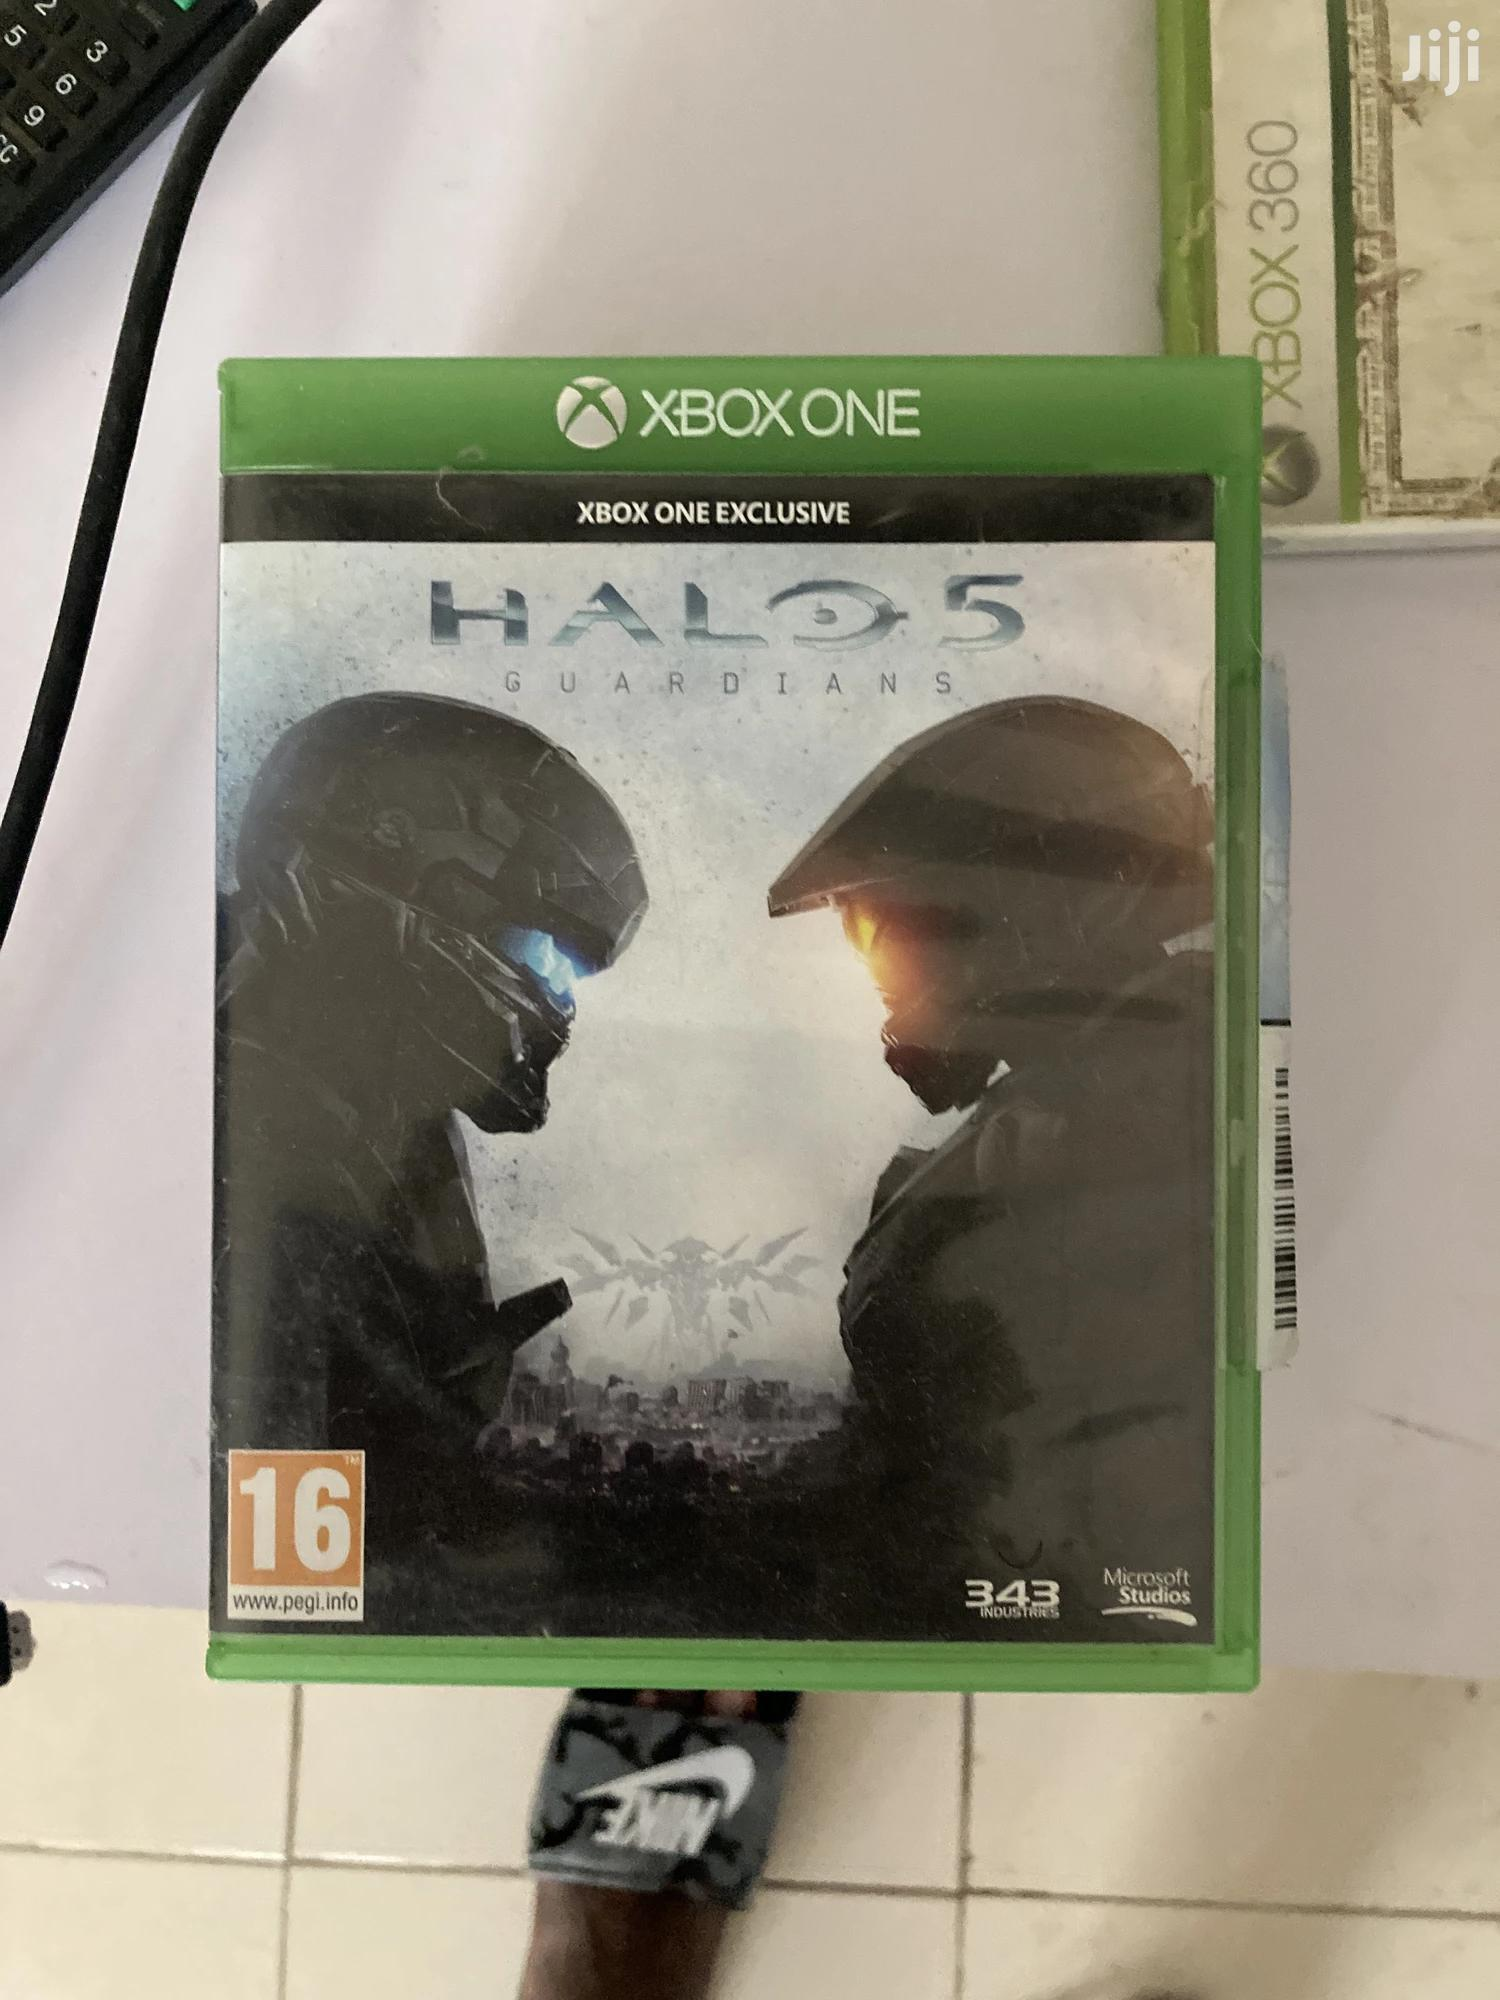 Used Xbox One Games in Good Condition